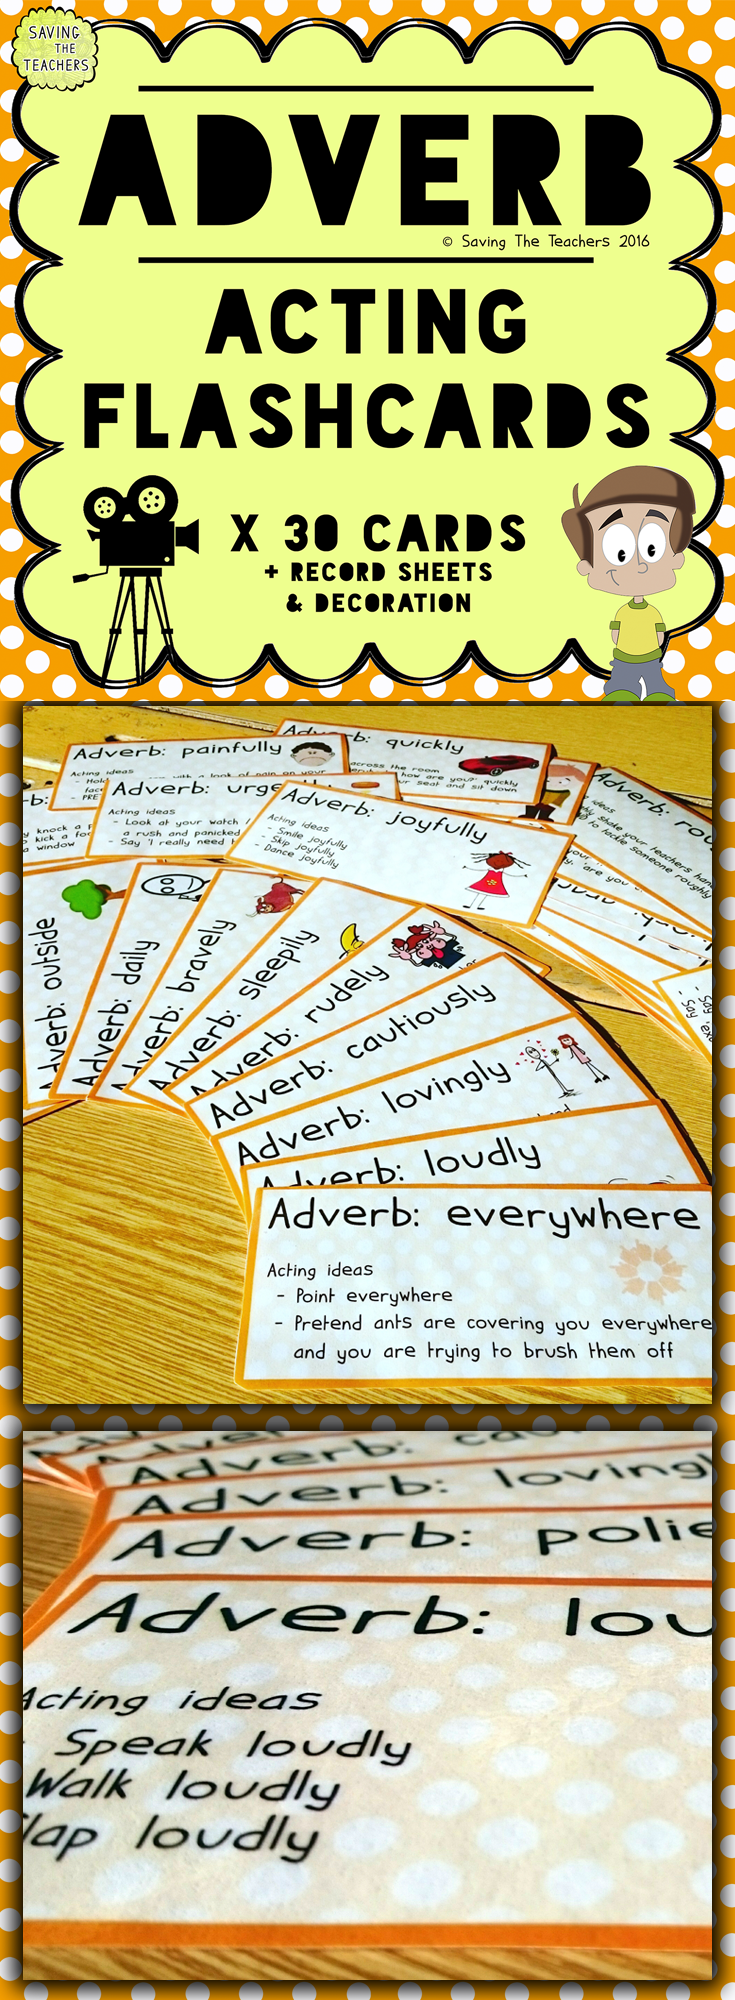 adverb acting game | tpt resources that give | pinterest | adverbs